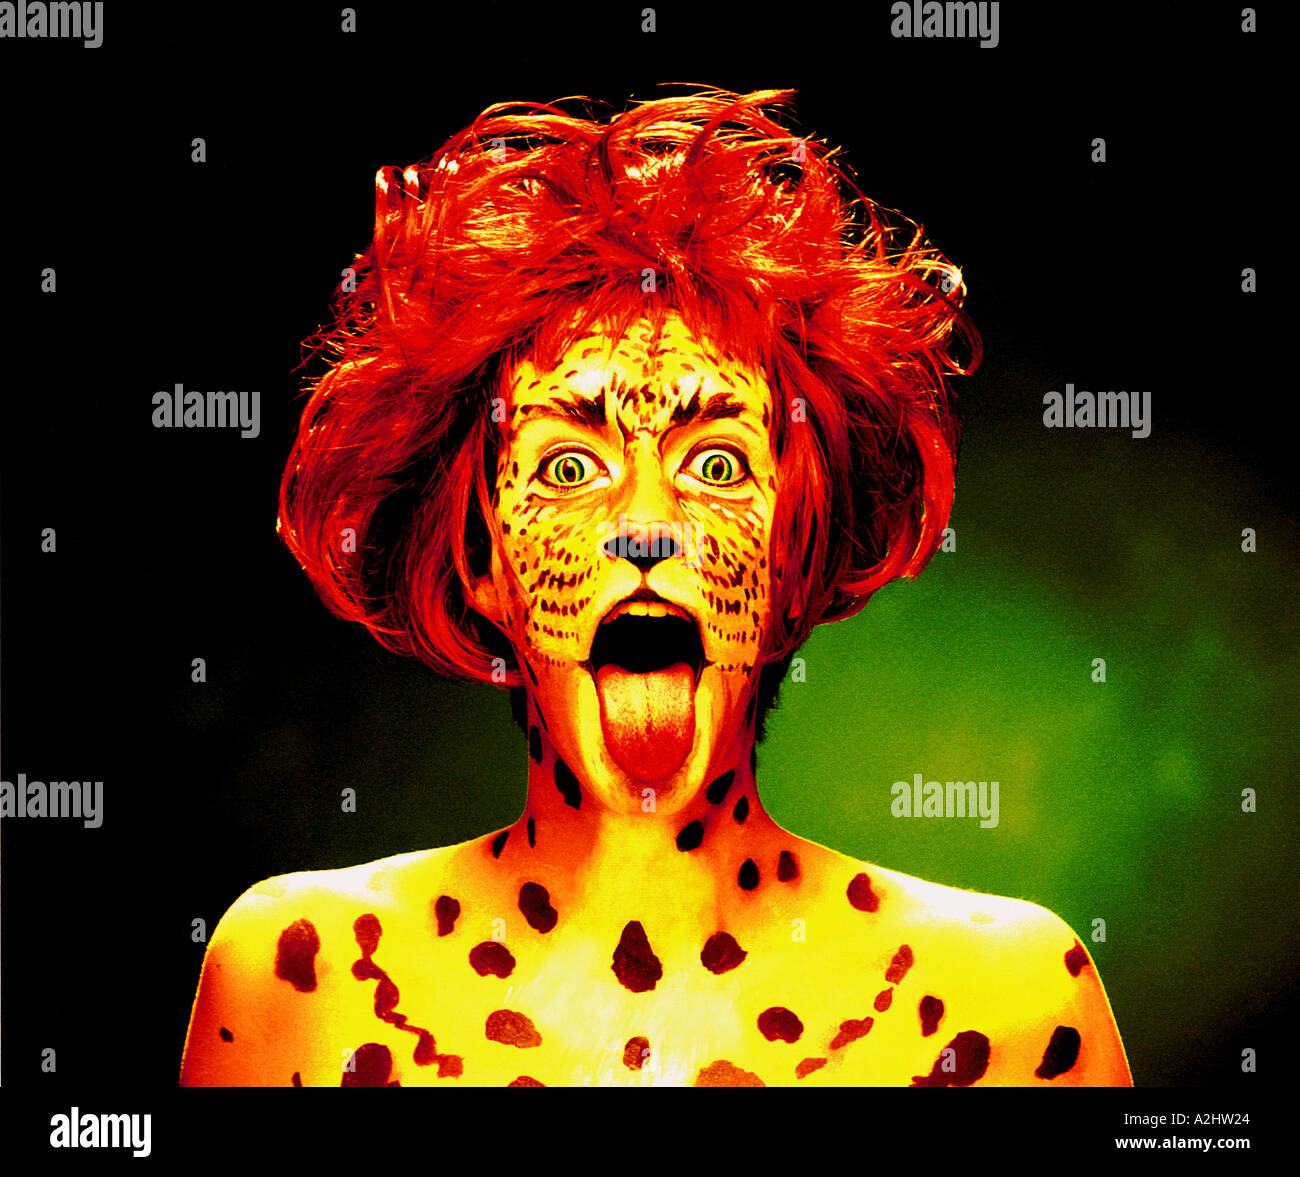 Woman age 20-25 with her face painted as a Tiger. She is wearing a red wig and has her tongue out. - Stock Image